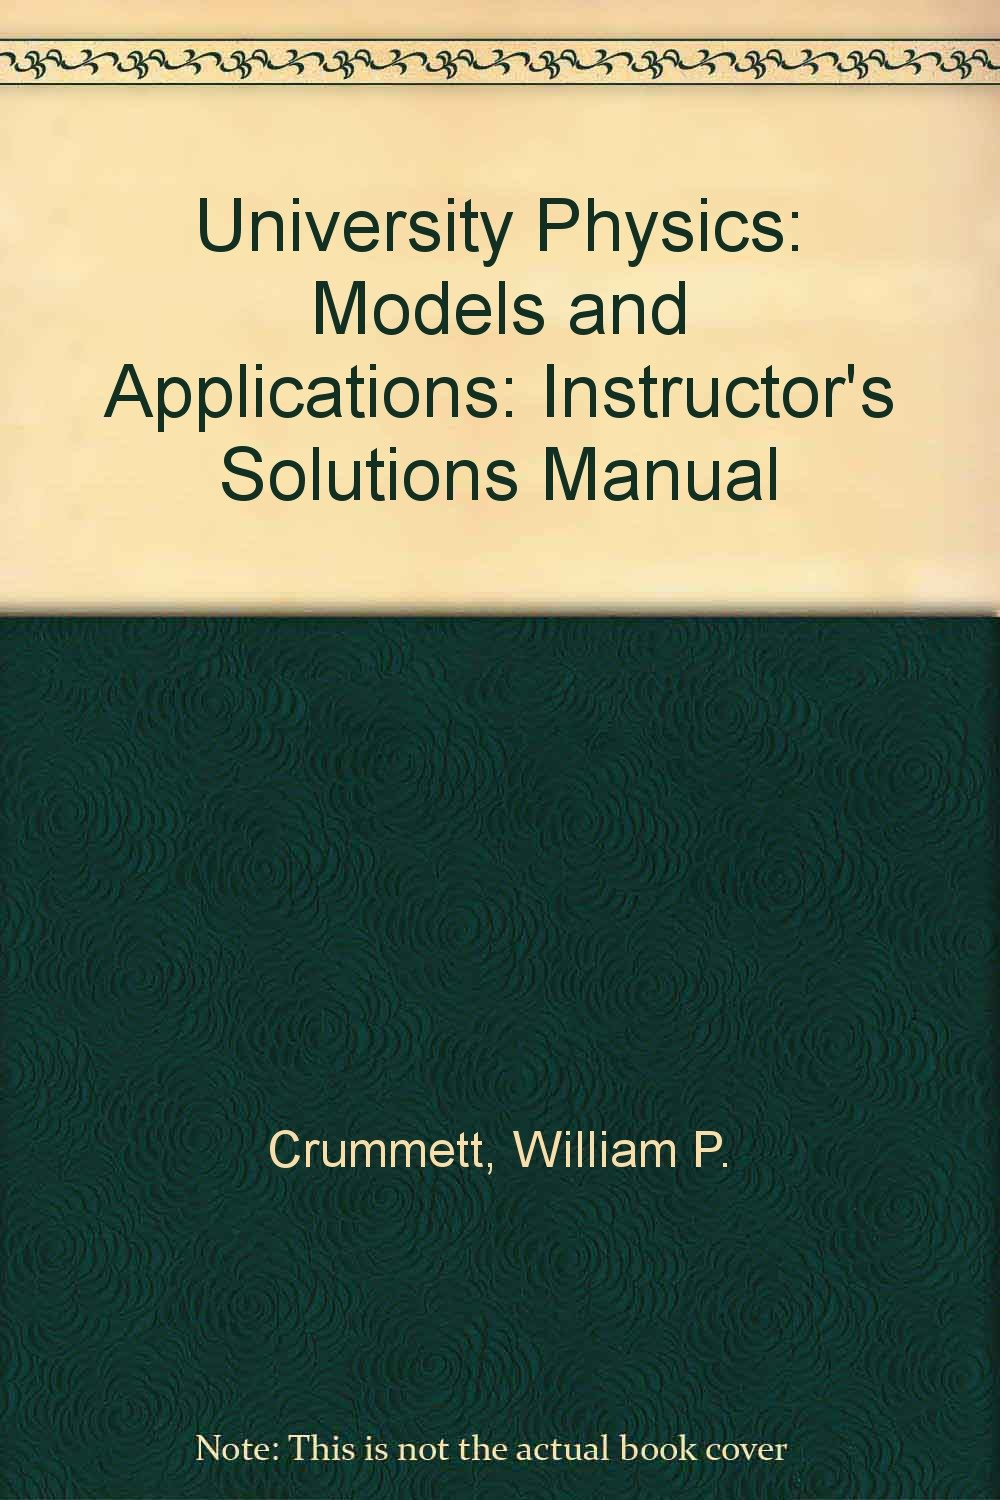 University Physics: Models and Applications: Instructor's Solutions Manual:  William P. Crummett: 9780697164254: Amazon.com: Books